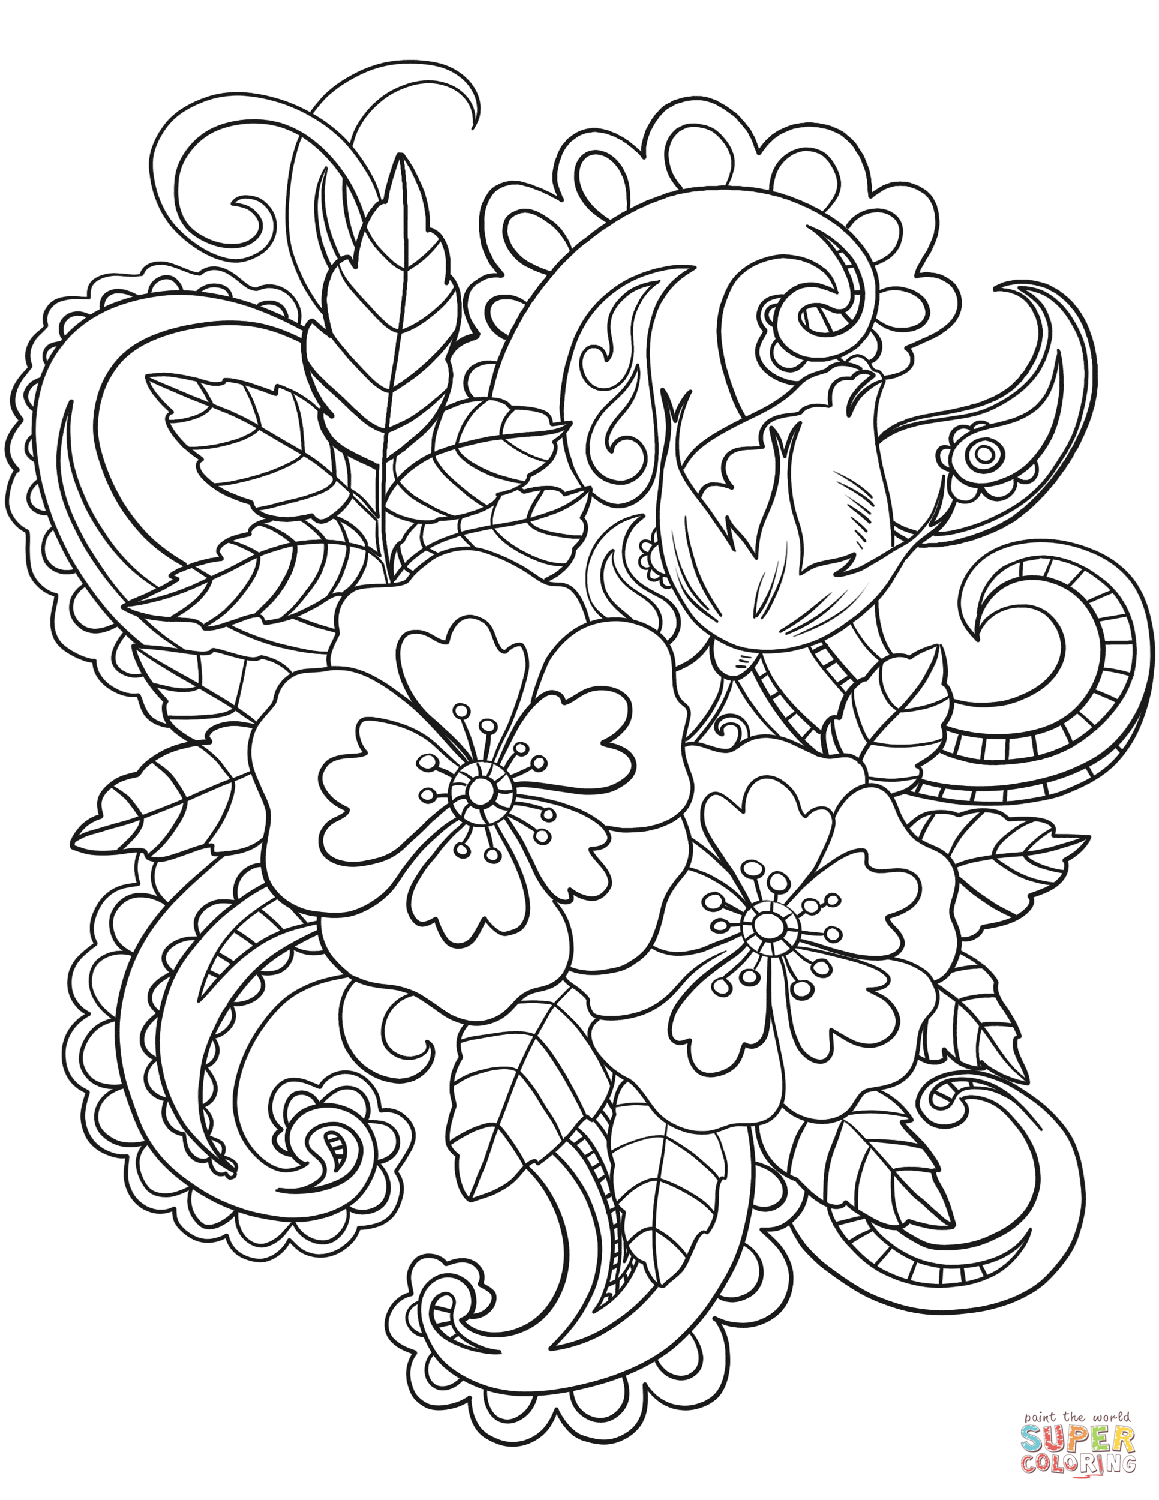 Flowers with Paisley Patterns coloring page from Paisley designs category.  Select from 29179 … | Flower coloring pages, Pattern coloring pages, Adult  coloring pages